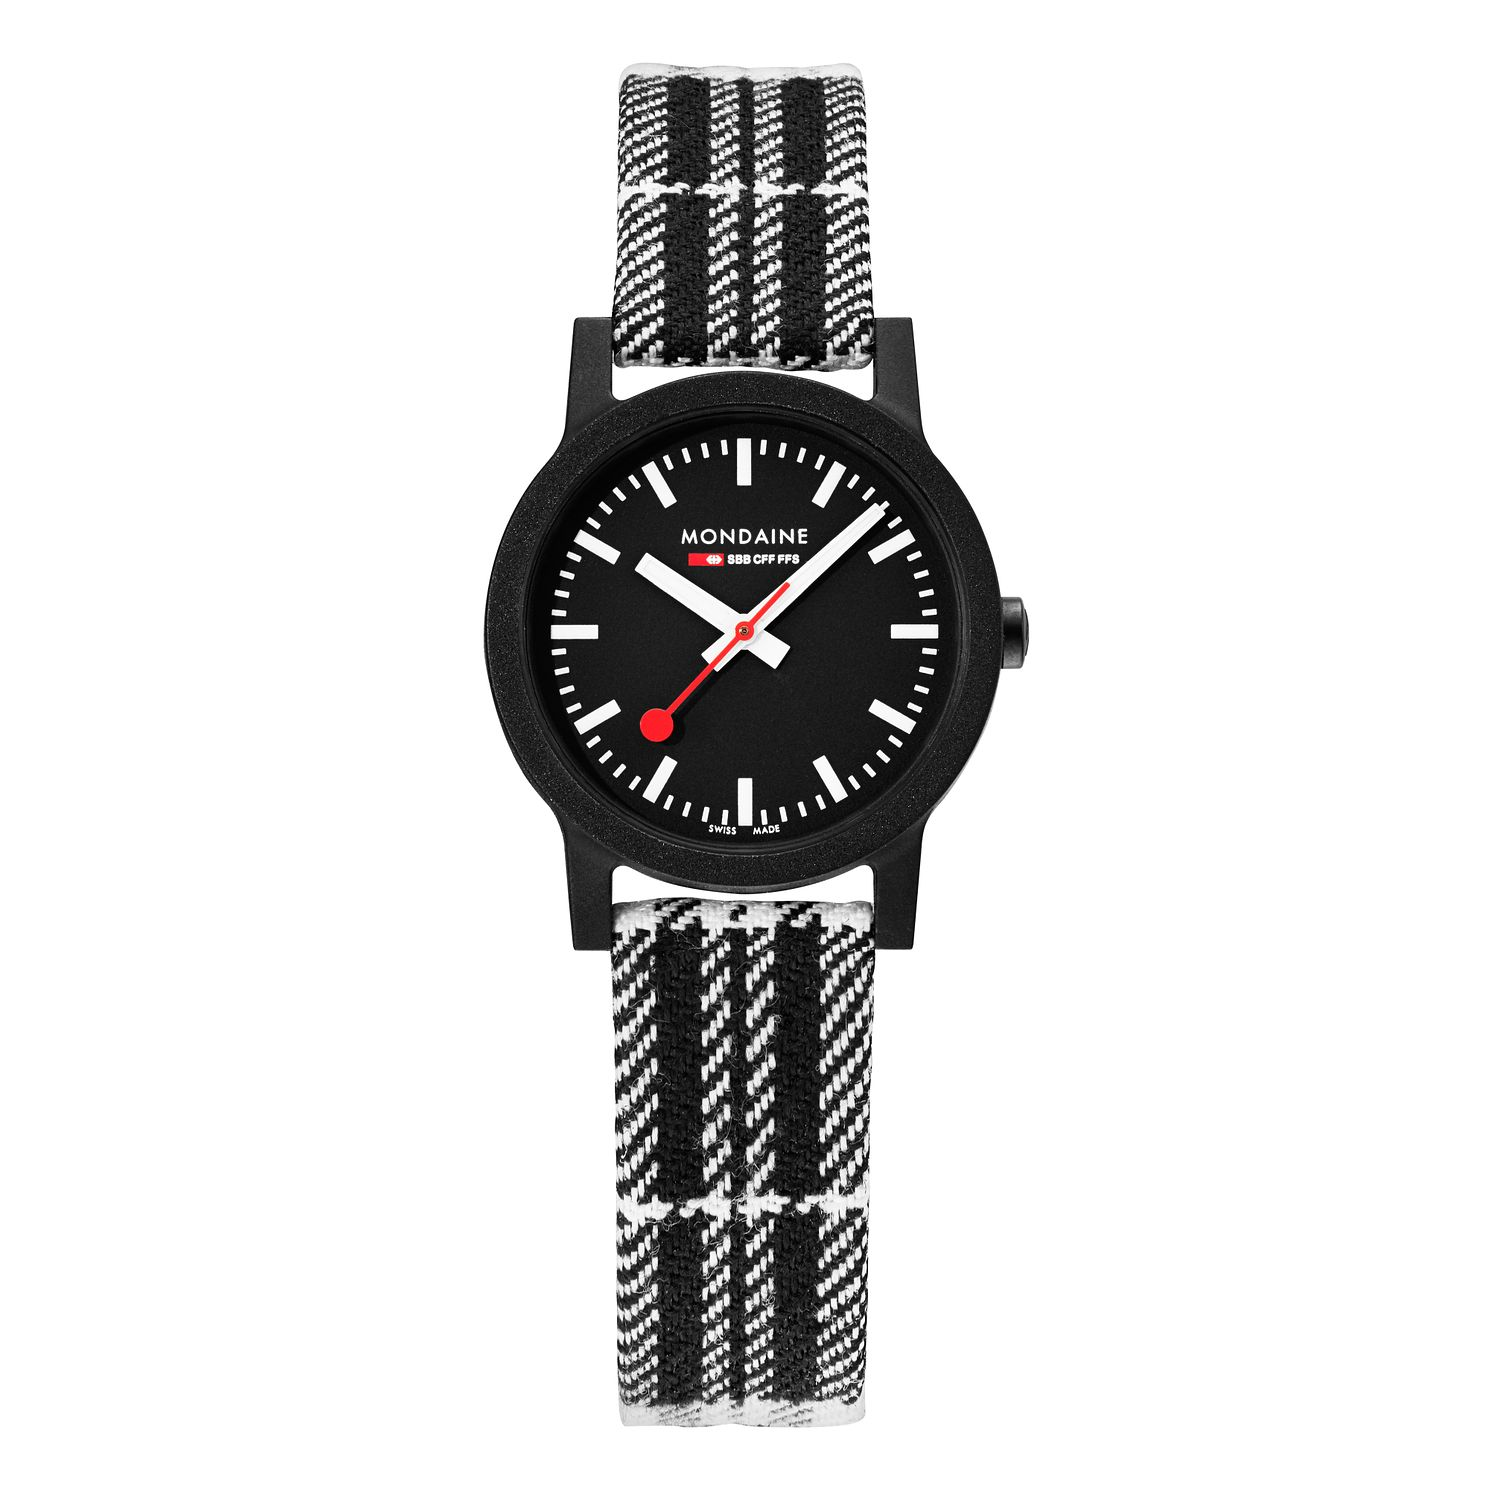 Mondaine Essence Ladies' Black Striped Fabric Strap Watch - Product number 5867819